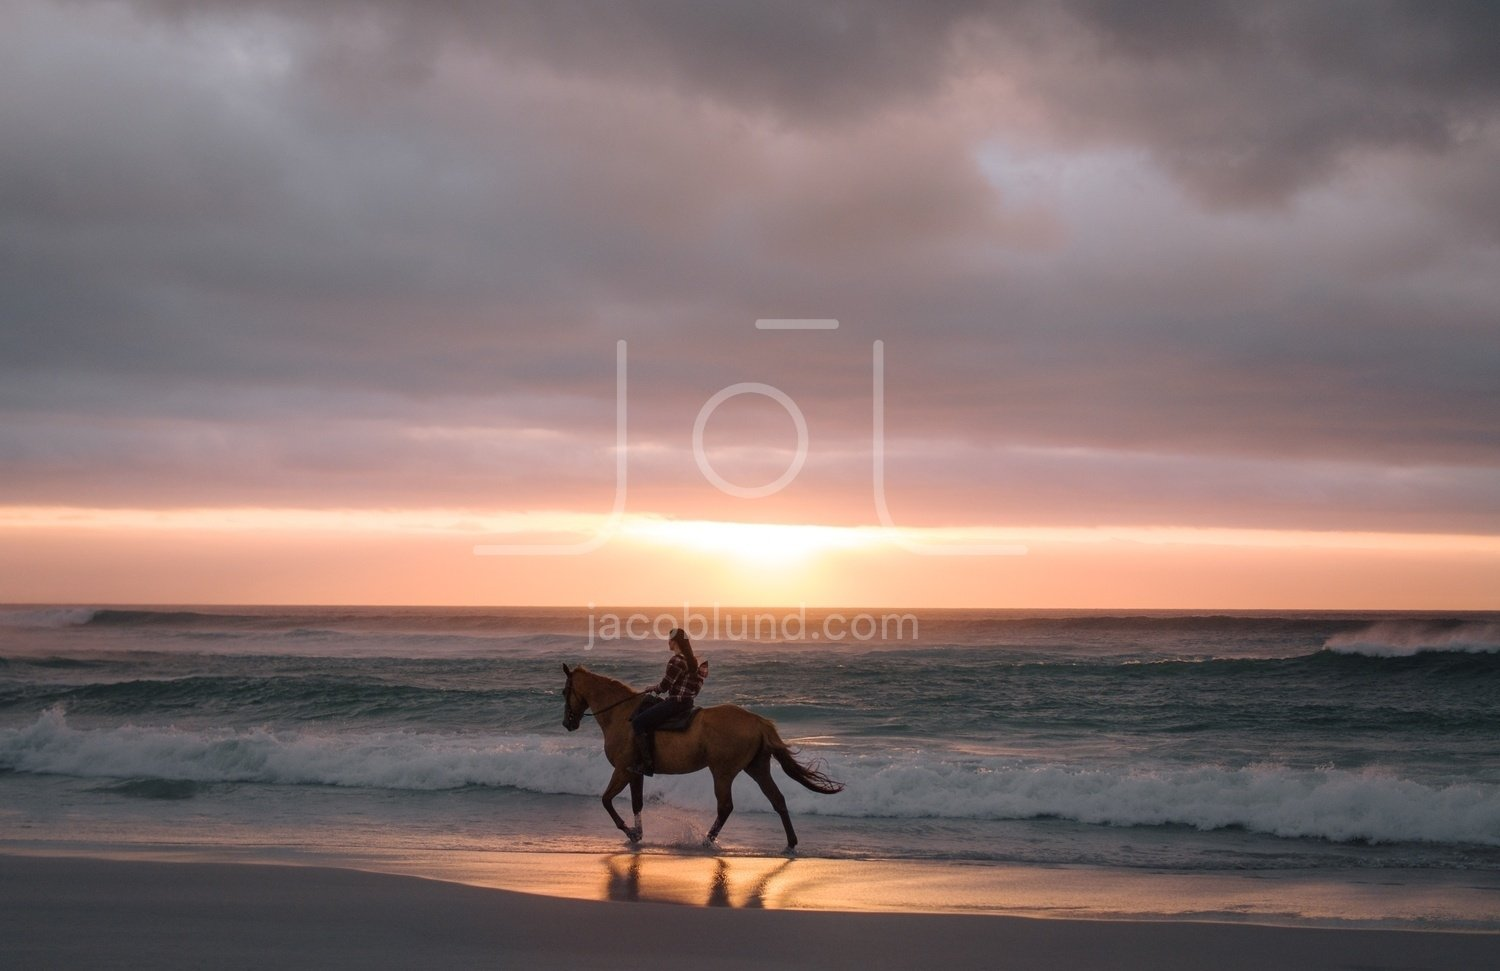 Woman Riding Horse On The Beach In Evening Jacob Lund Photography Store Premium Stock Photo